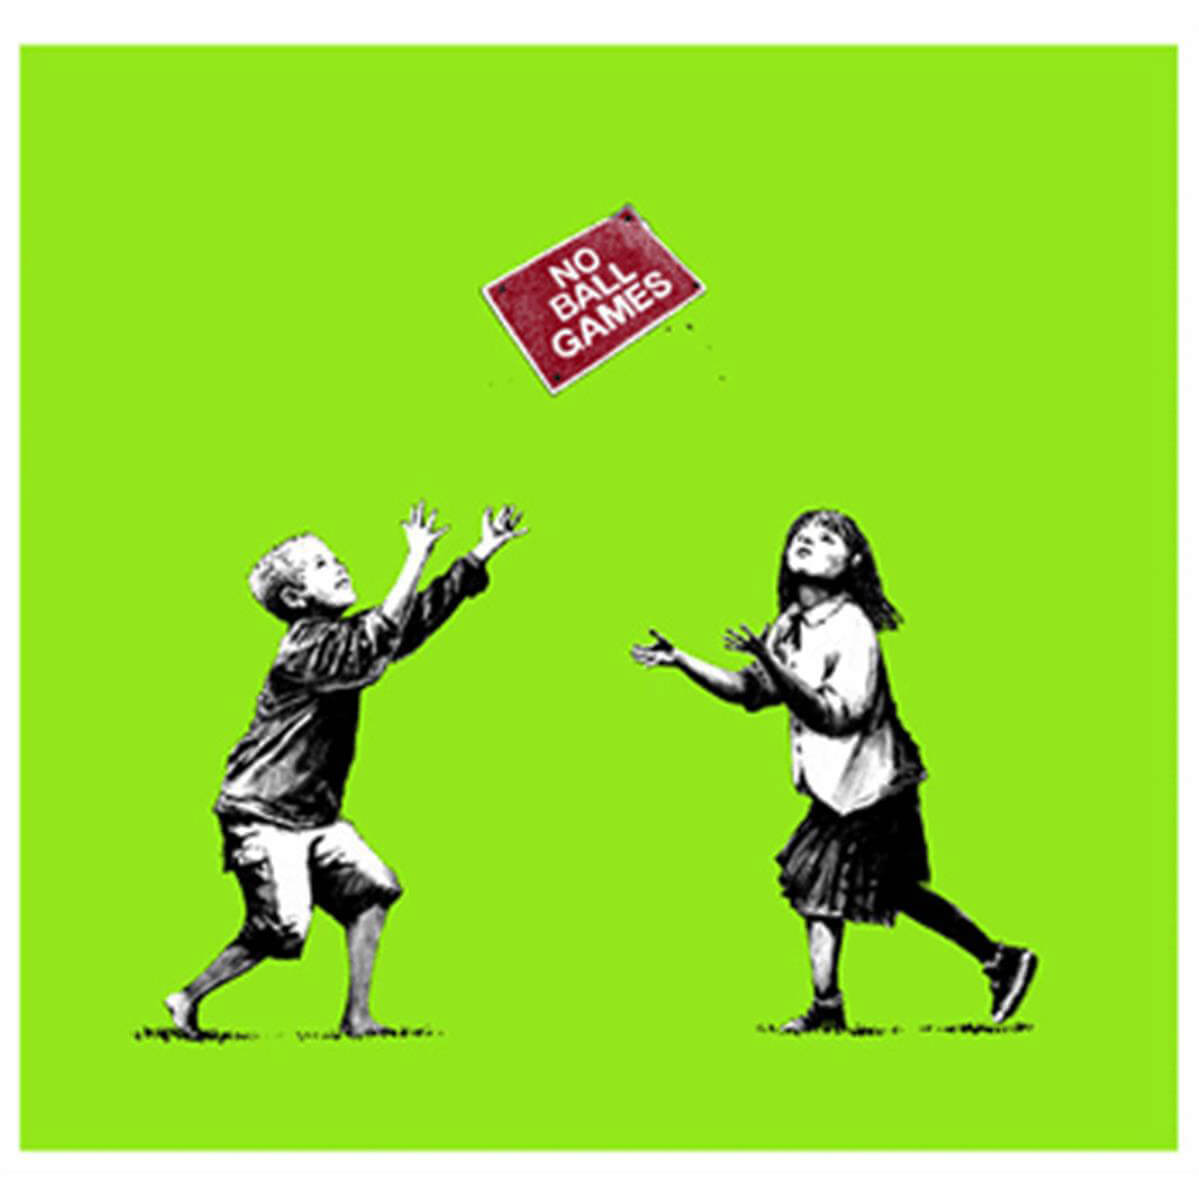 Banksy - No Ball Games (Green) Print (Signed)